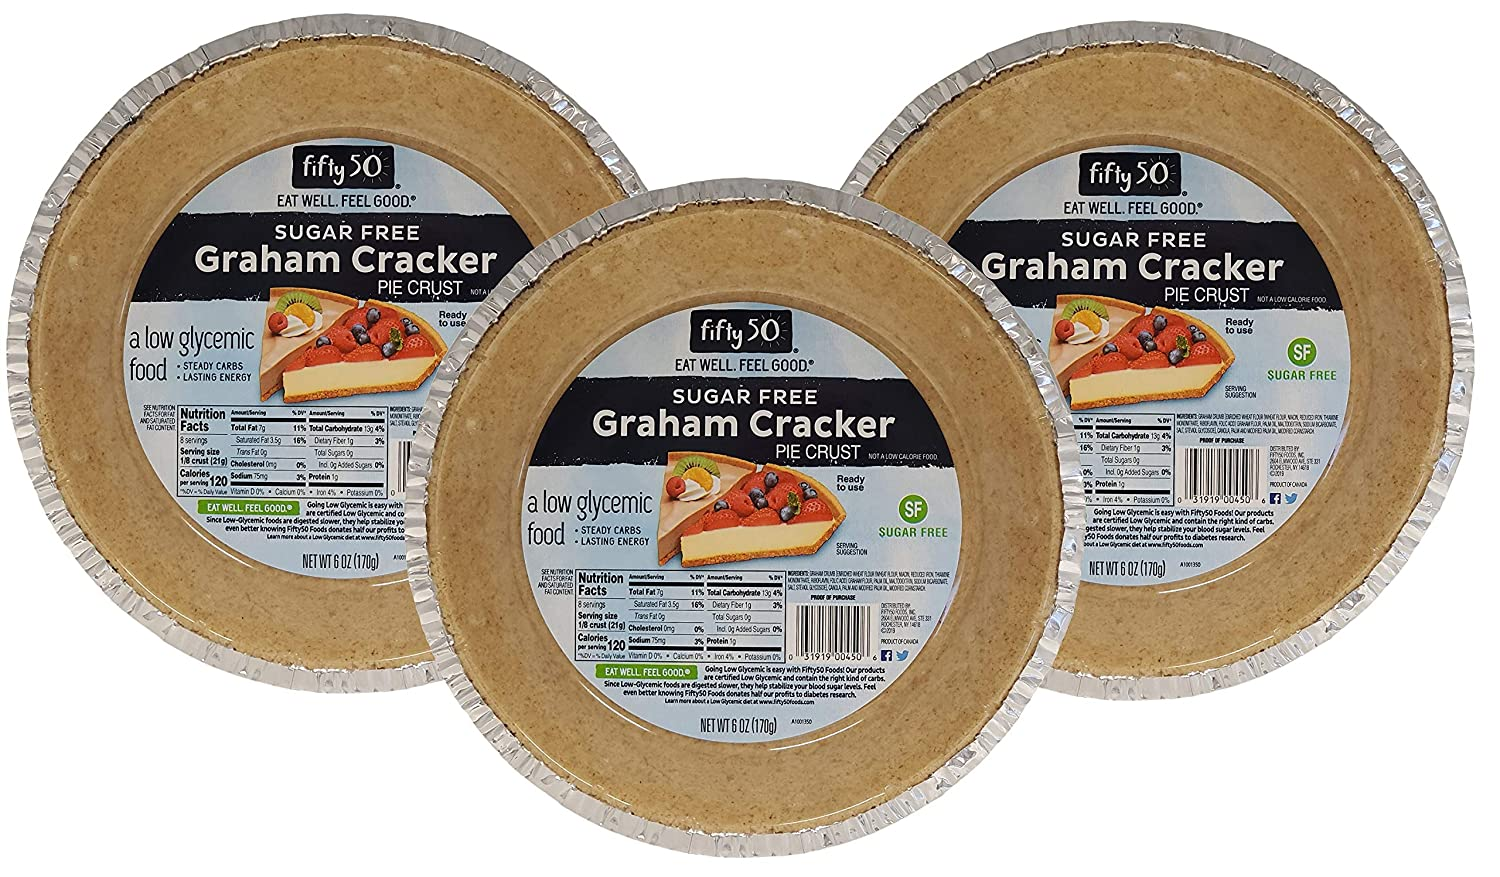 Fifty50 Foods Sugar Free Ready to Eat Graham Cracker Pie Crust, 6 Ounce (Pack of 3)